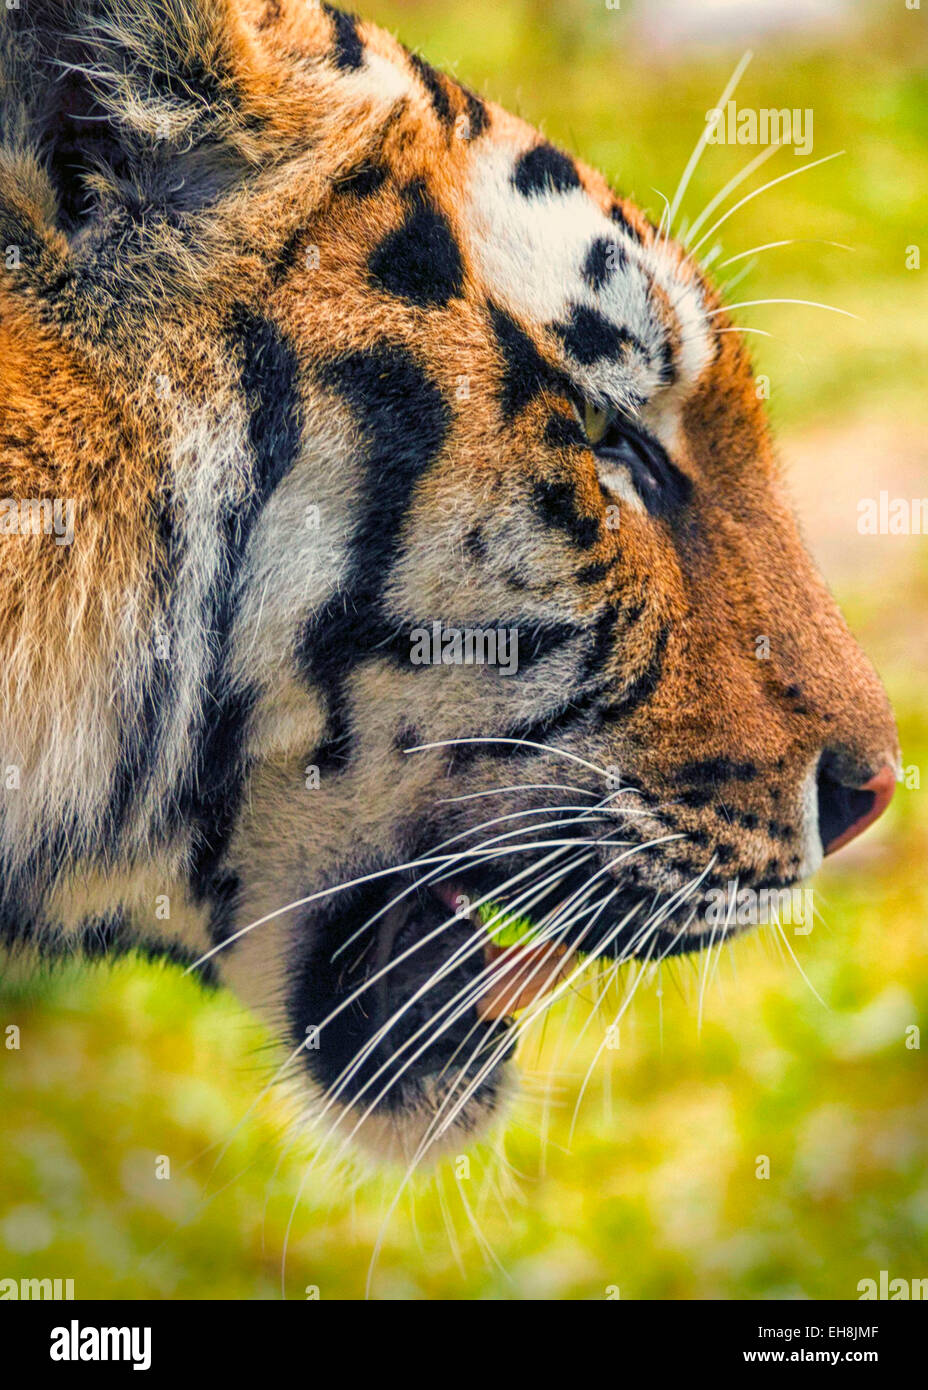 close up of tigers face in profile stock photo 79480927 alamy